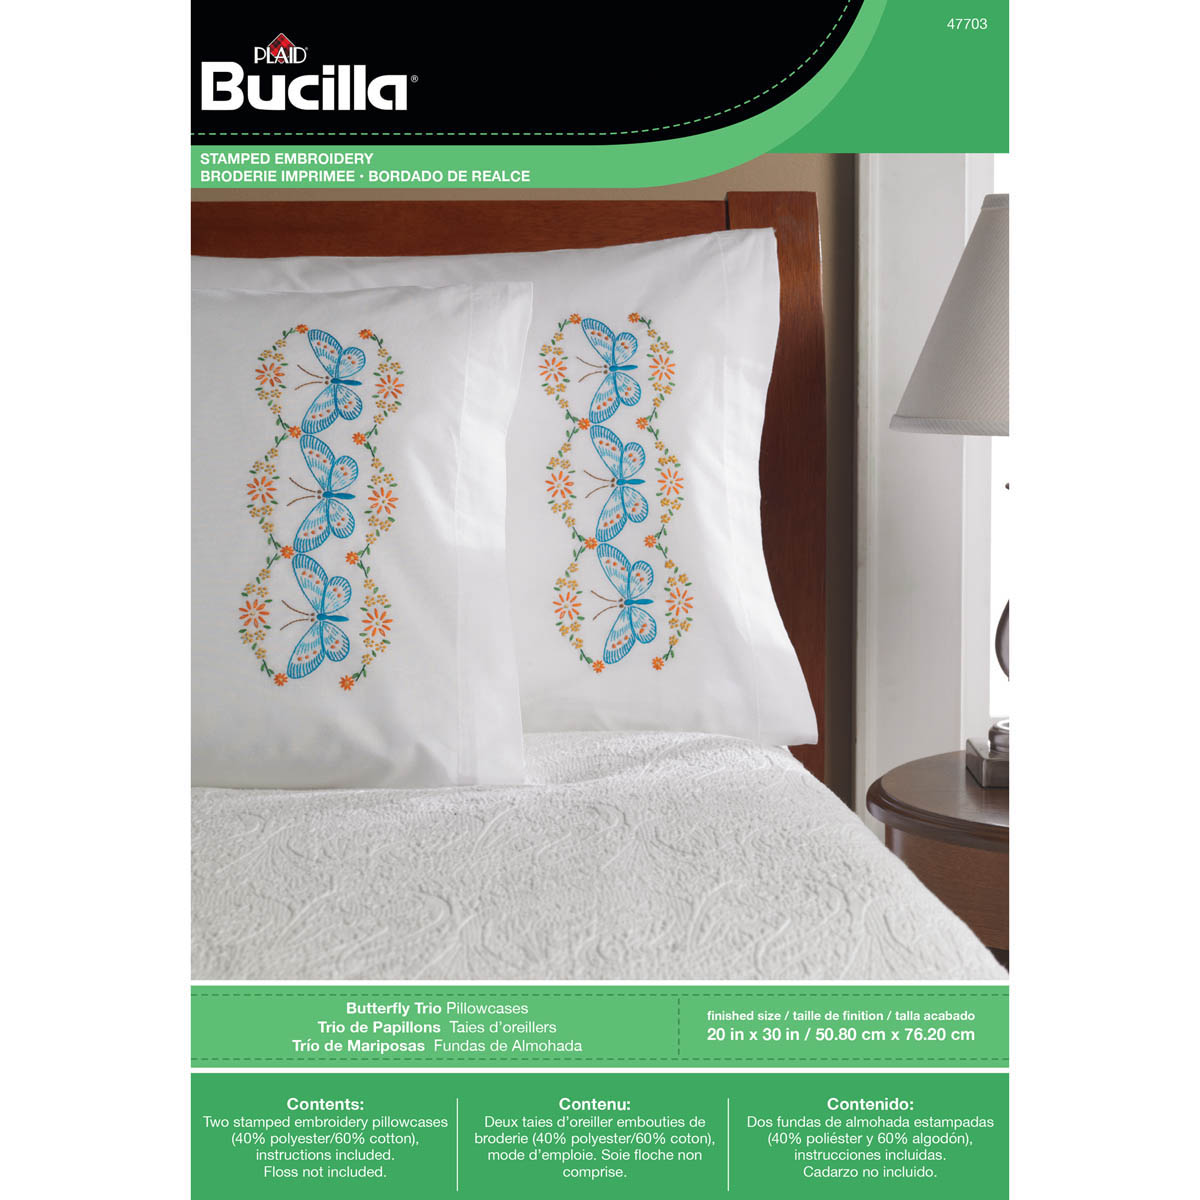 Bucilla ® Stamped Cross Stitch & Embroidery - Pillowcase Pairs - Butterfly Trio - 47703